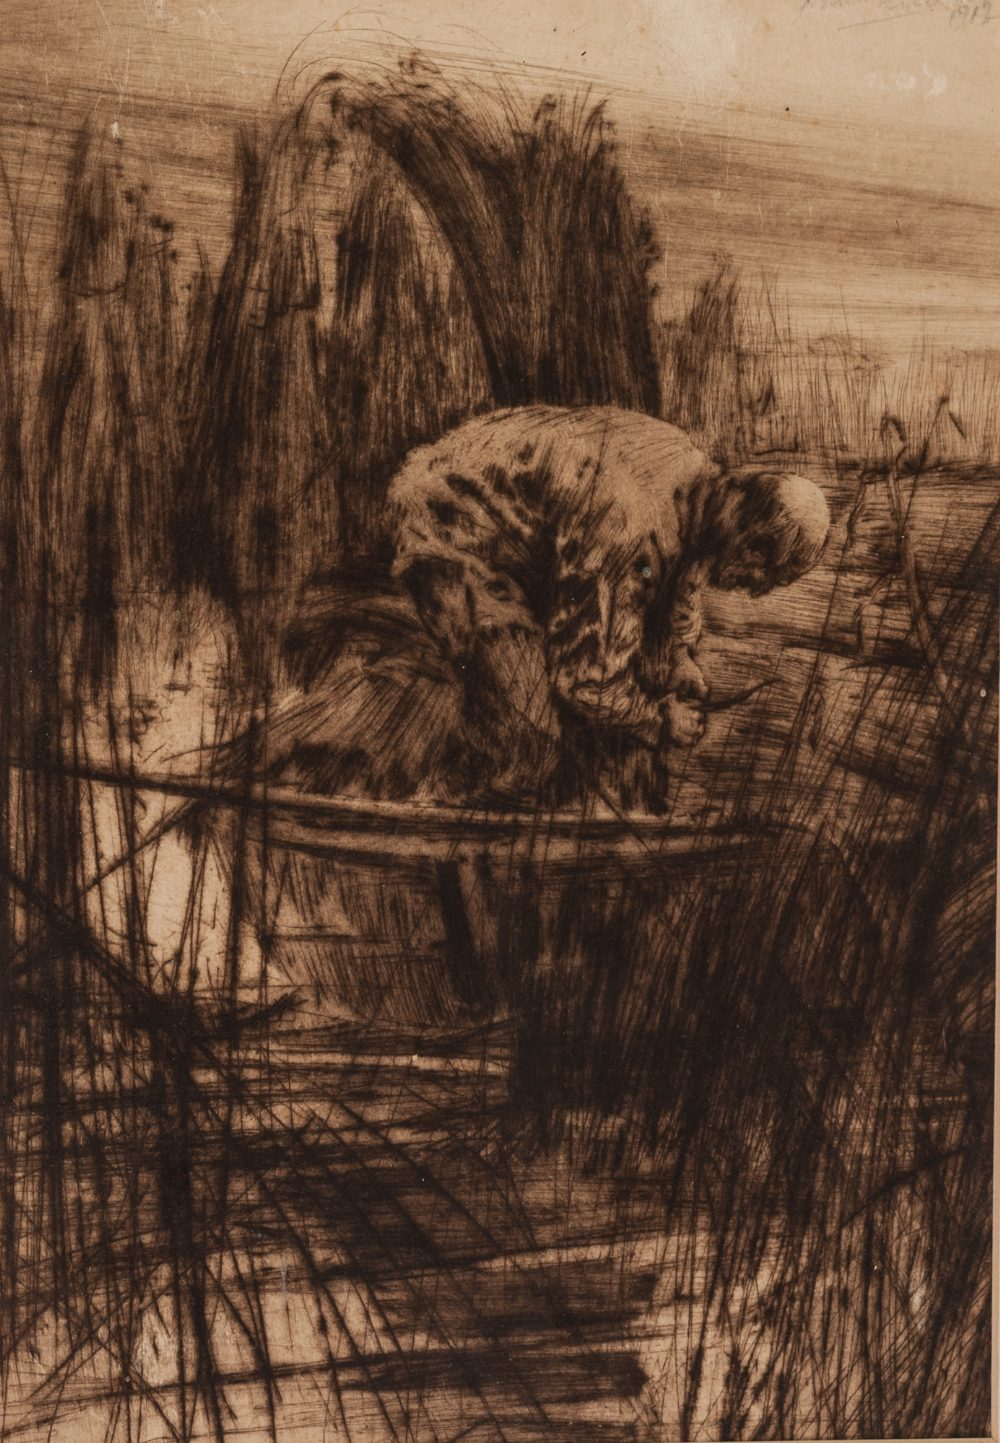 "Lot 208 - HAROLD STANLEY PERCIVAL (1868-1914) ORIGINAL ETCHING 'Reed-Cutter' 10"" x 6 3/4"" (25.5cm x 17cm)"